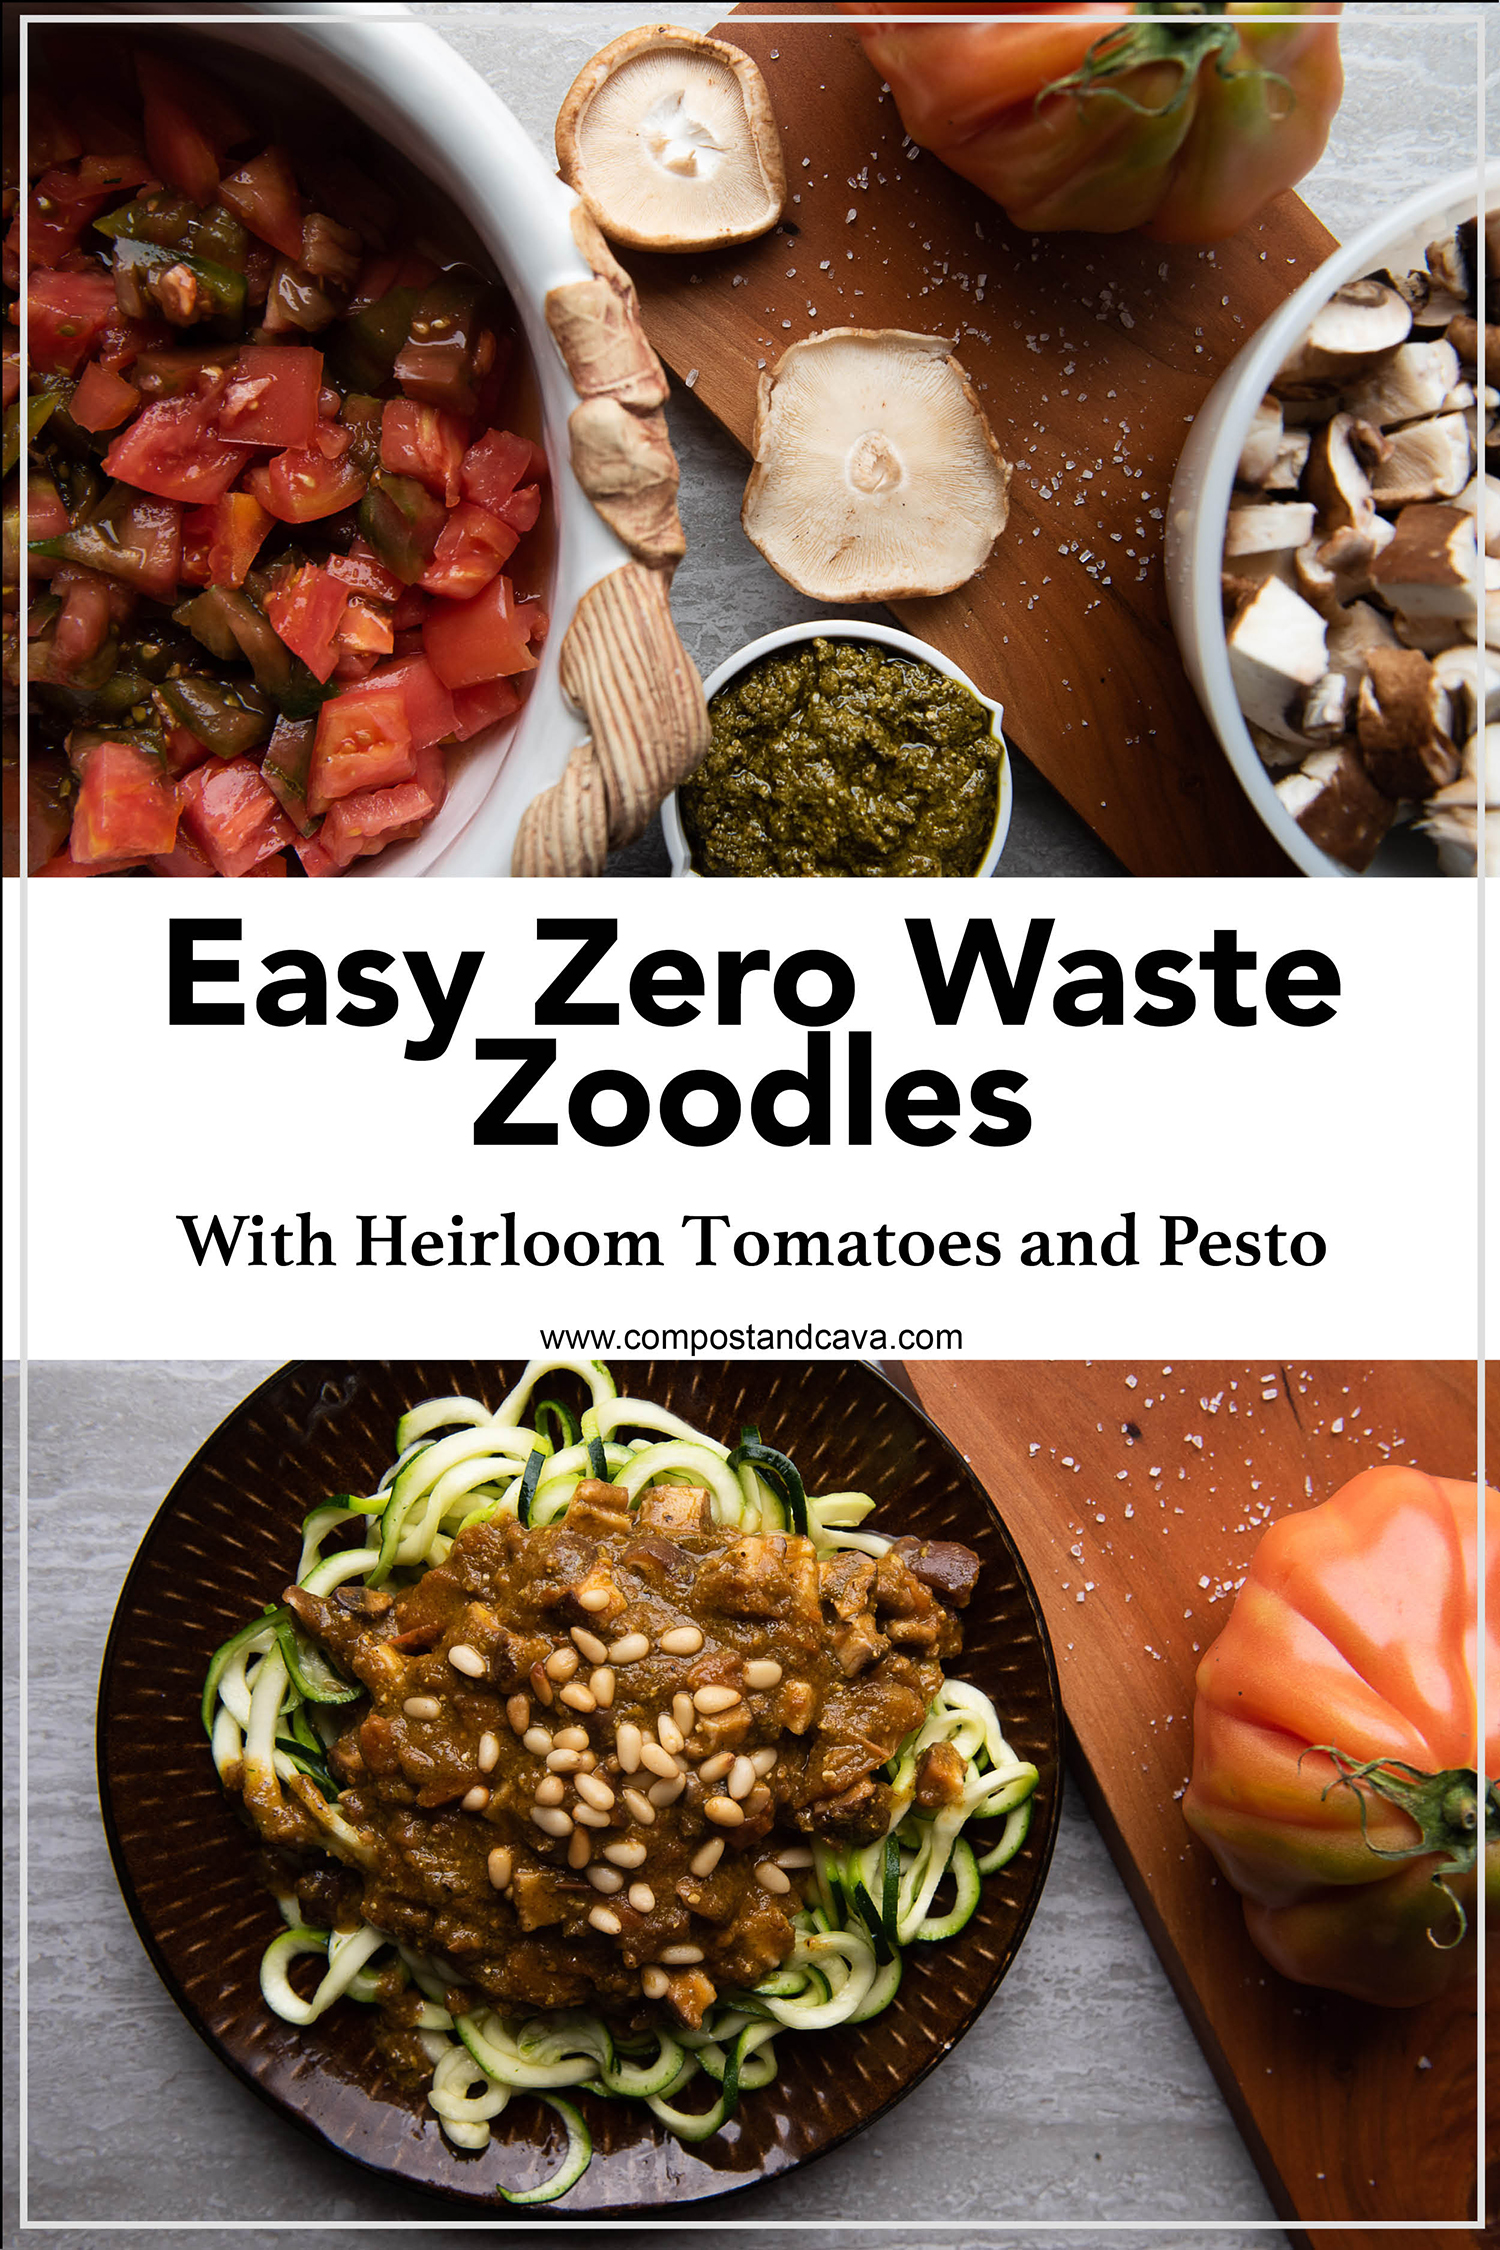 Easy Zero Waste Zoodles  With Heirloom Tomatoes and Pesto